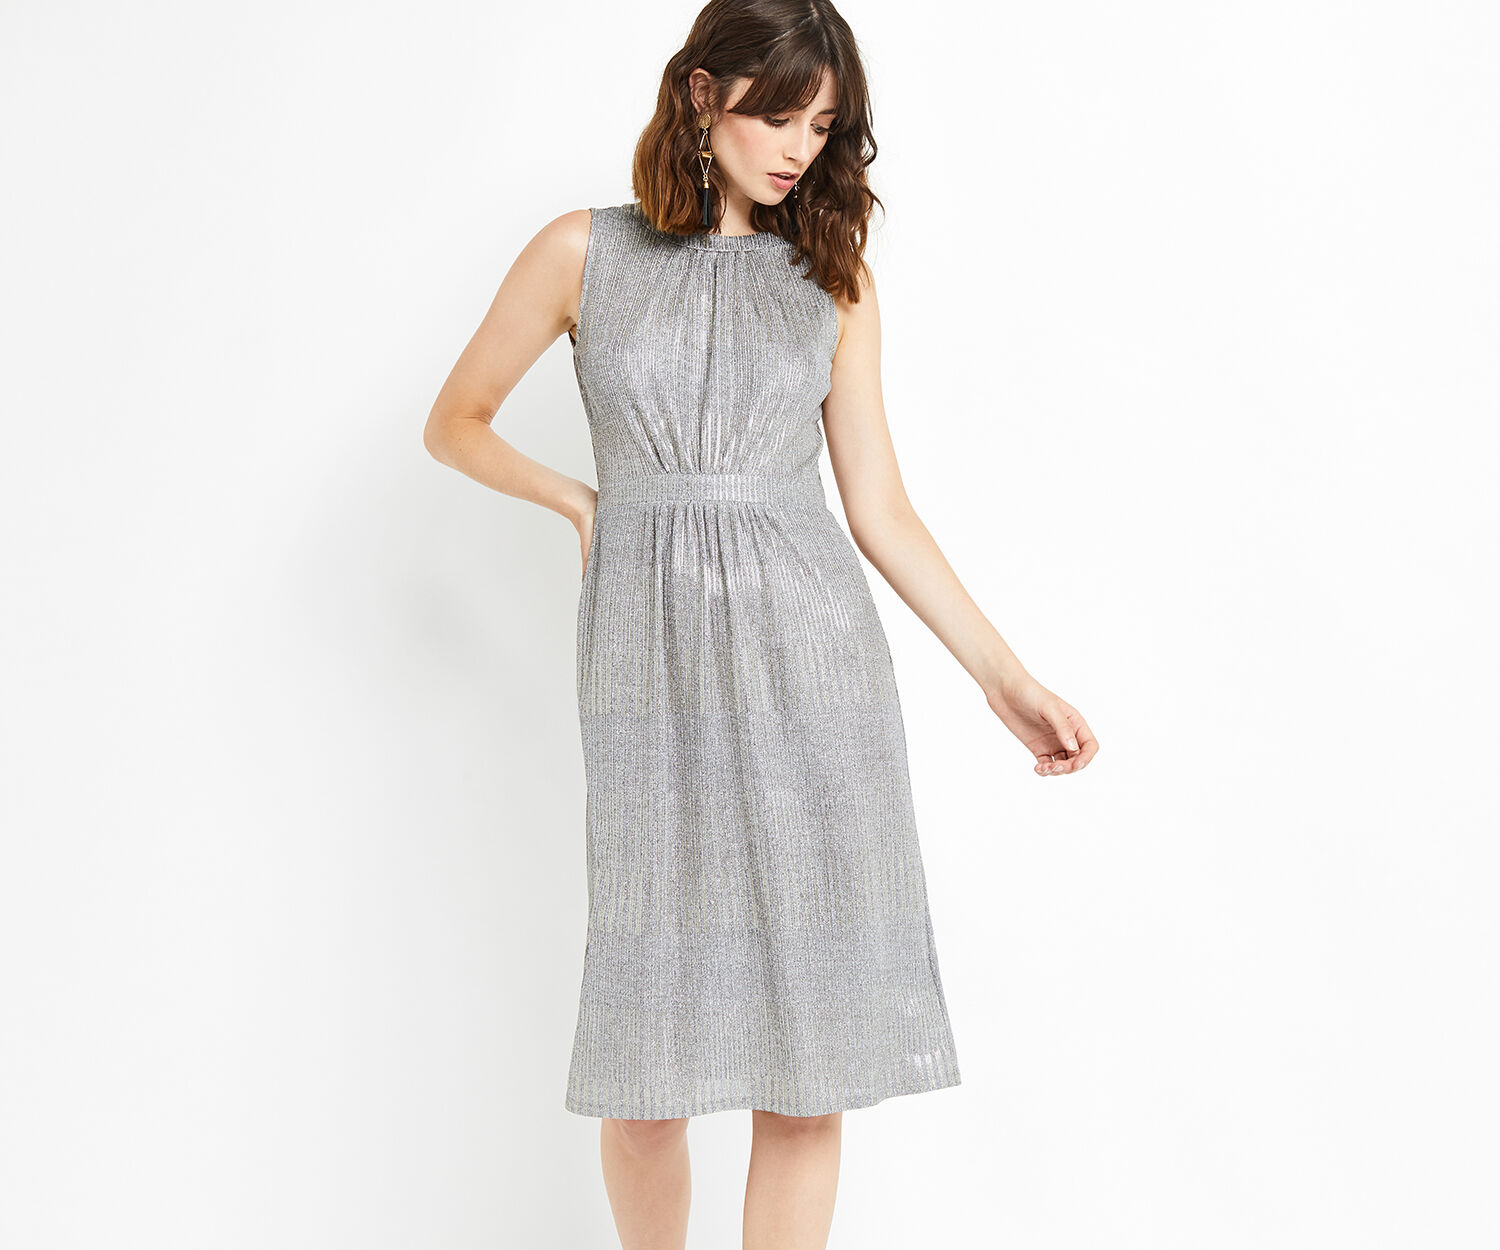 Oasis, GEO FOIL GRECIAN DRESS Metallic Pewter 1